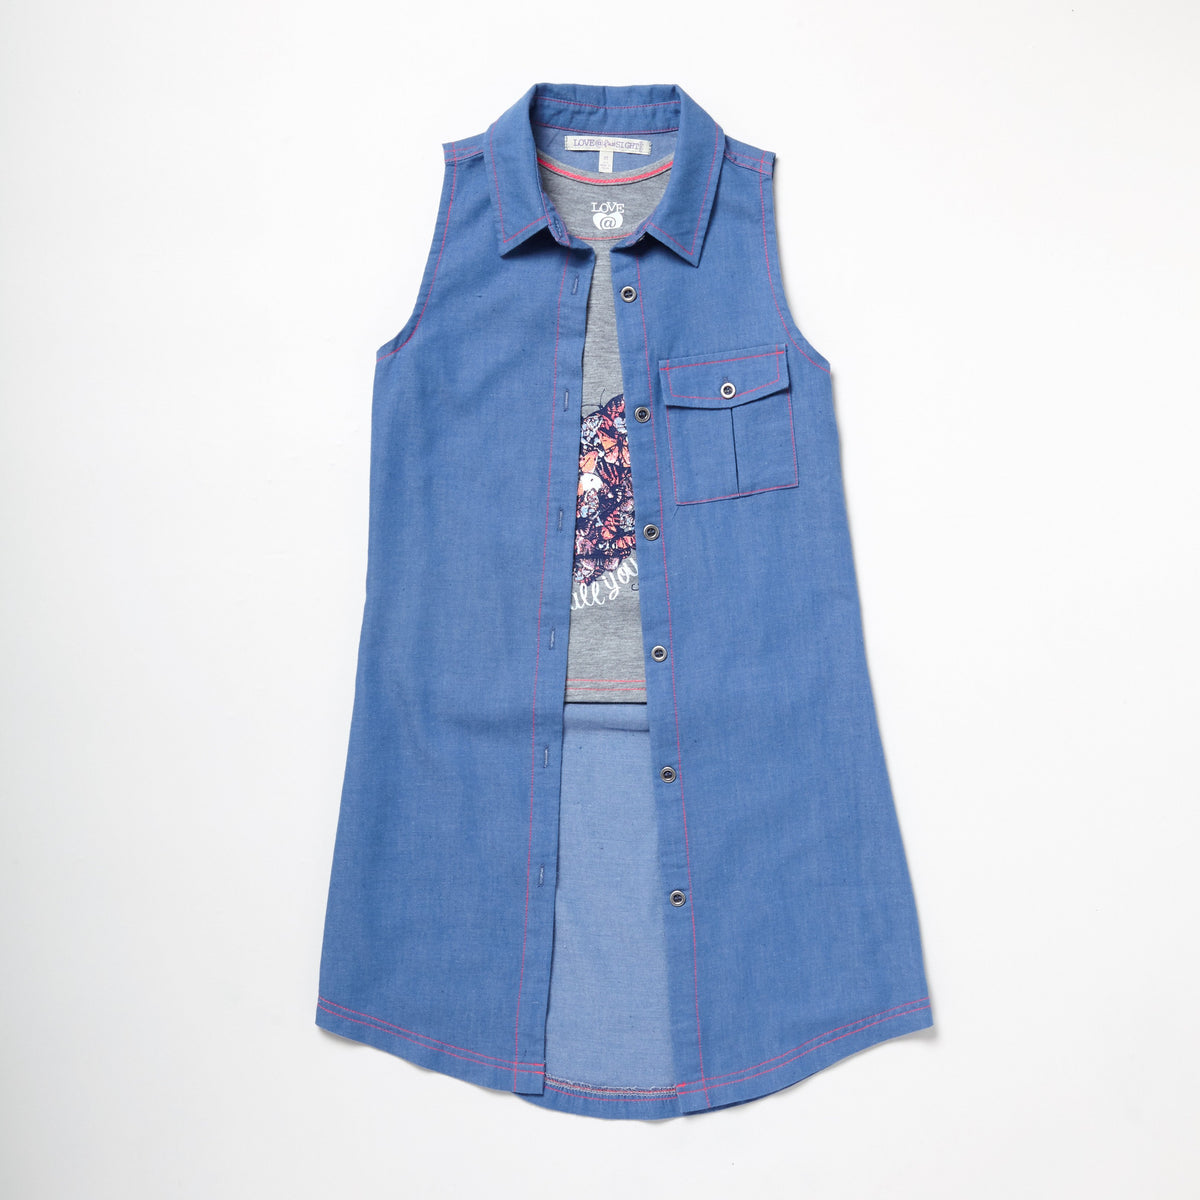 Chambray Printed Top And Vest